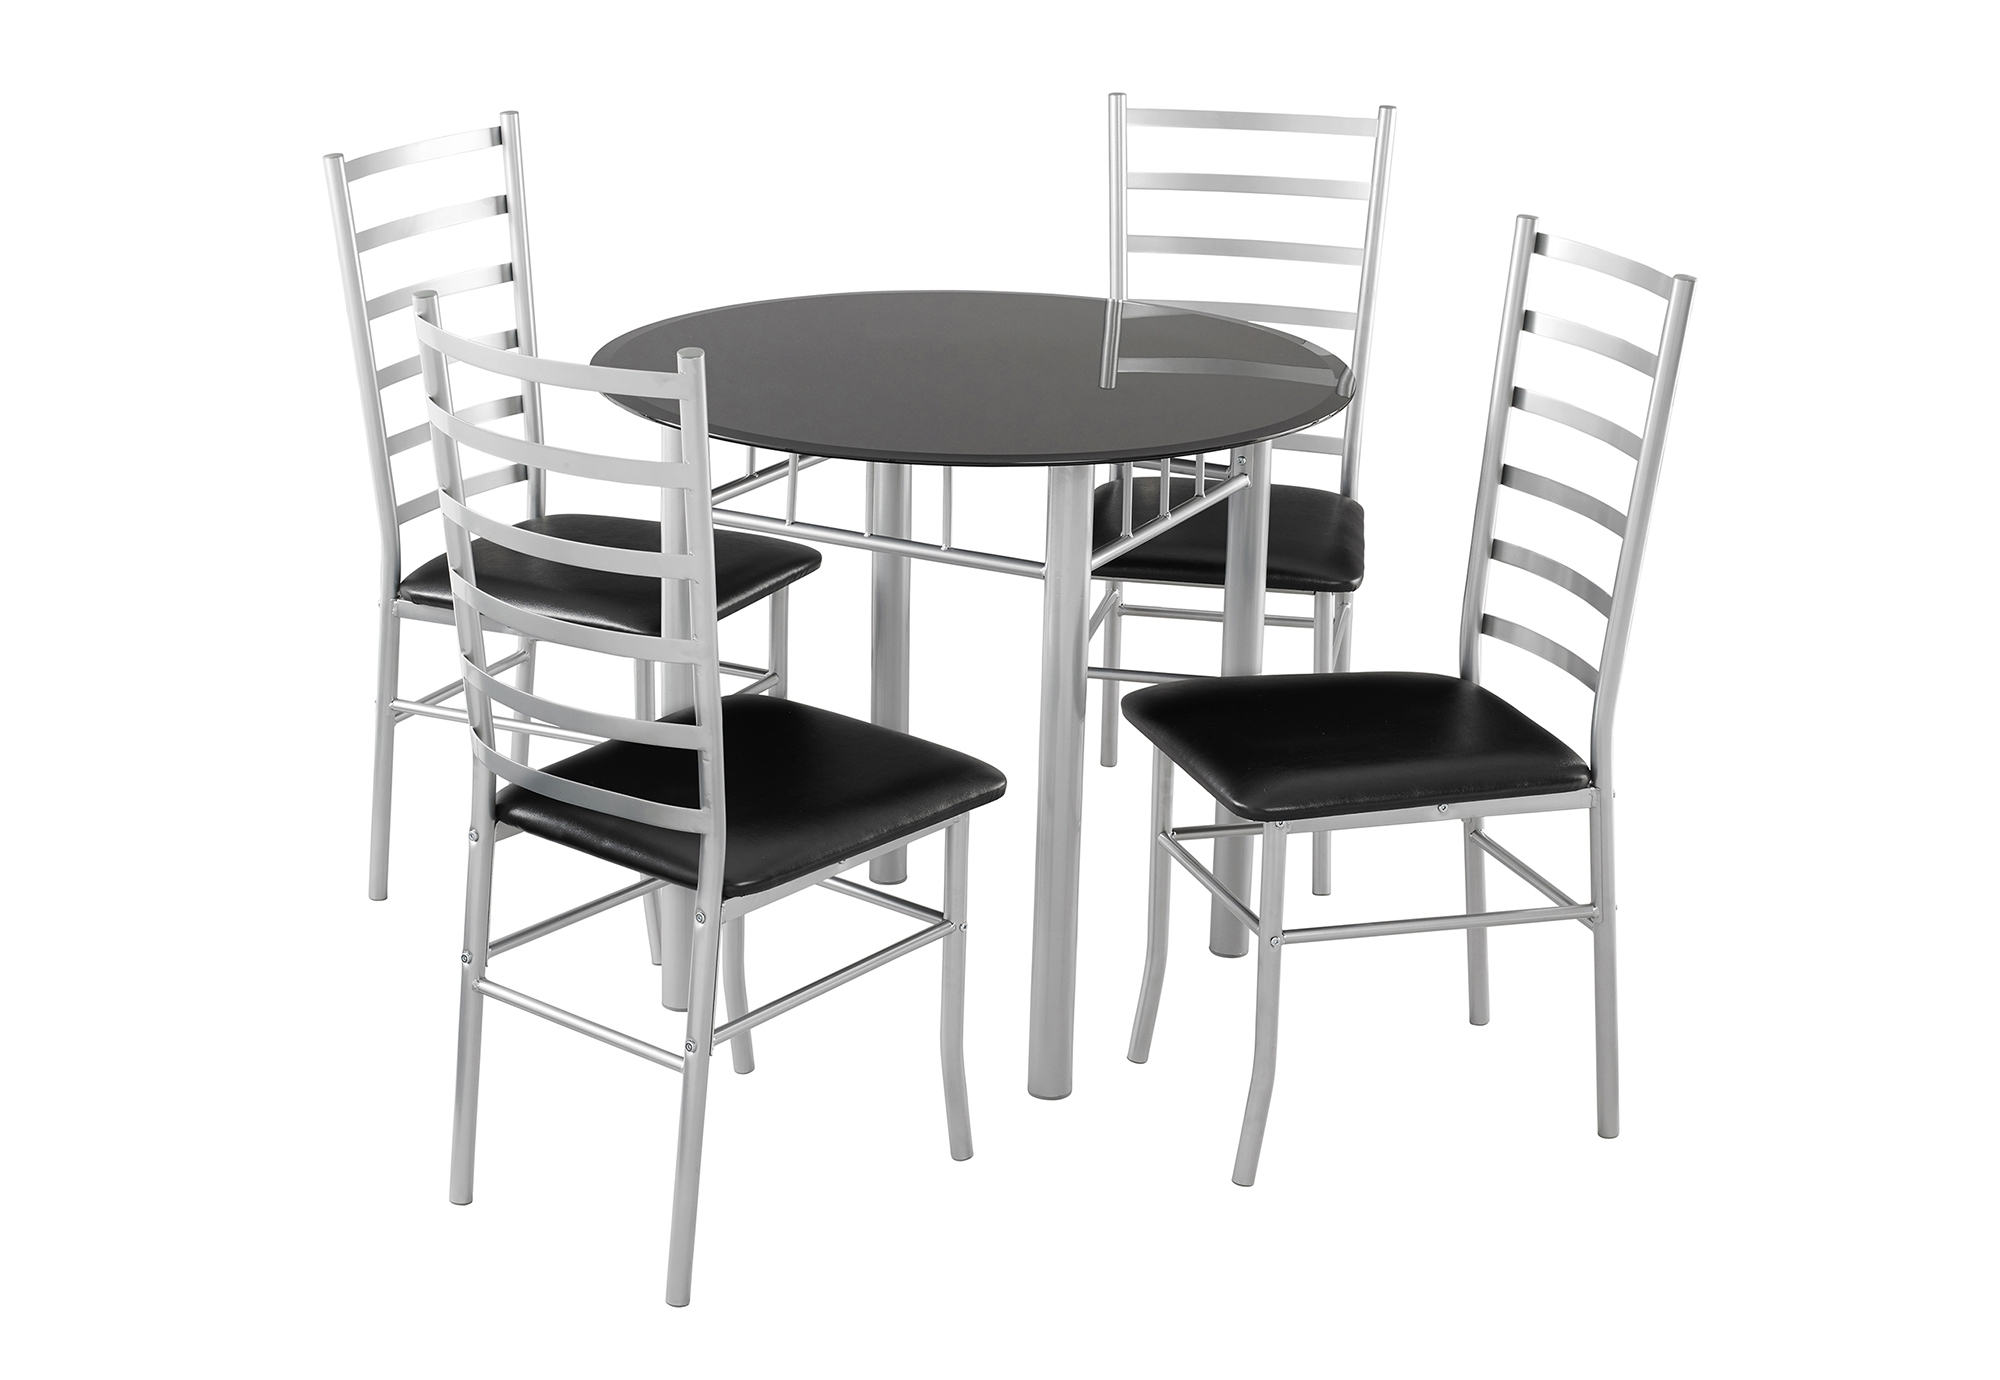 Lincoln Dining Set 4 Seater – Black Glass Dining Table & 4 Chairs Pertaining To 2017 Dining Tables Black Glass (View 16 of 25)